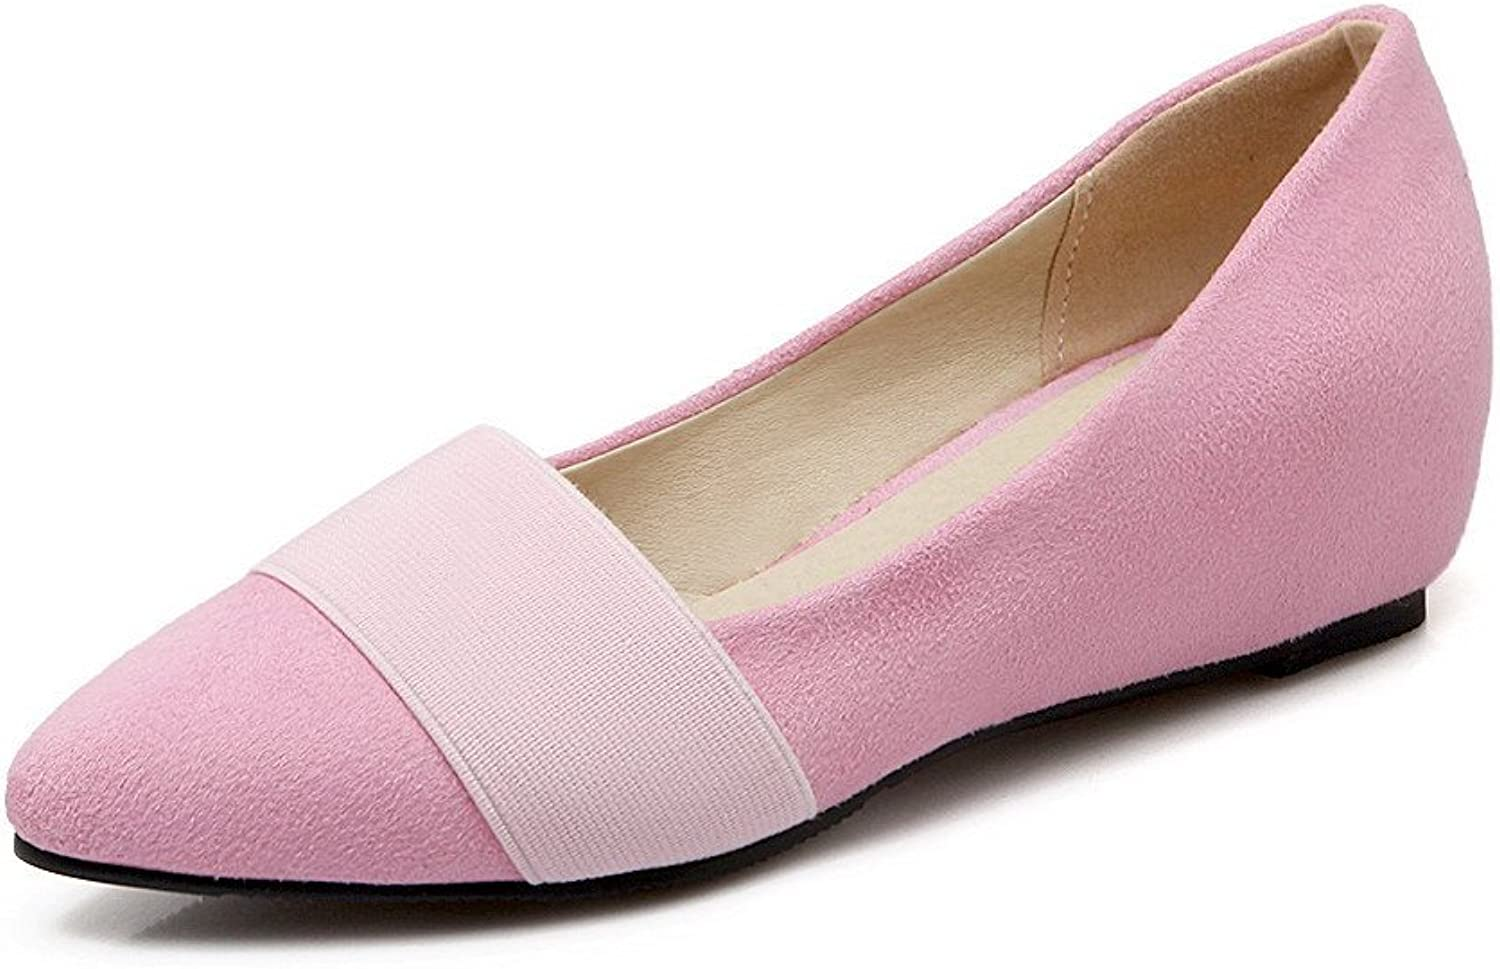 AllhqFashion Women's Solid Frosted Kitten-Heels Pull-on Pointed Closed Toe Pumps-shoes